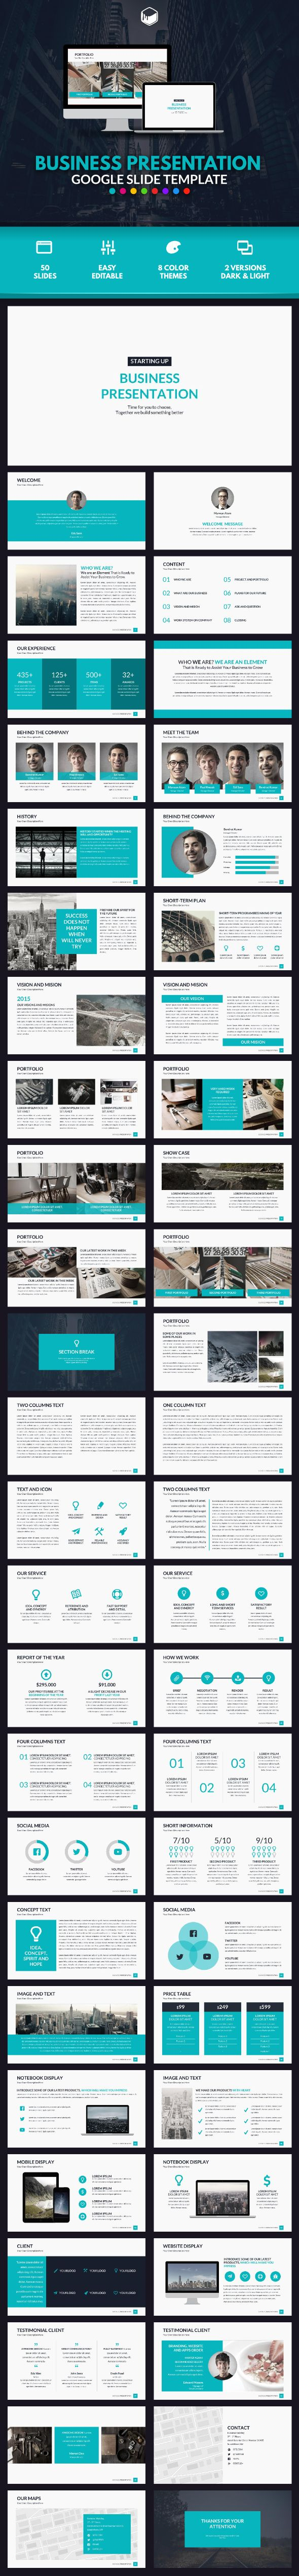 56 best Presentation Design Inspiration images on Pinterest | Page ...